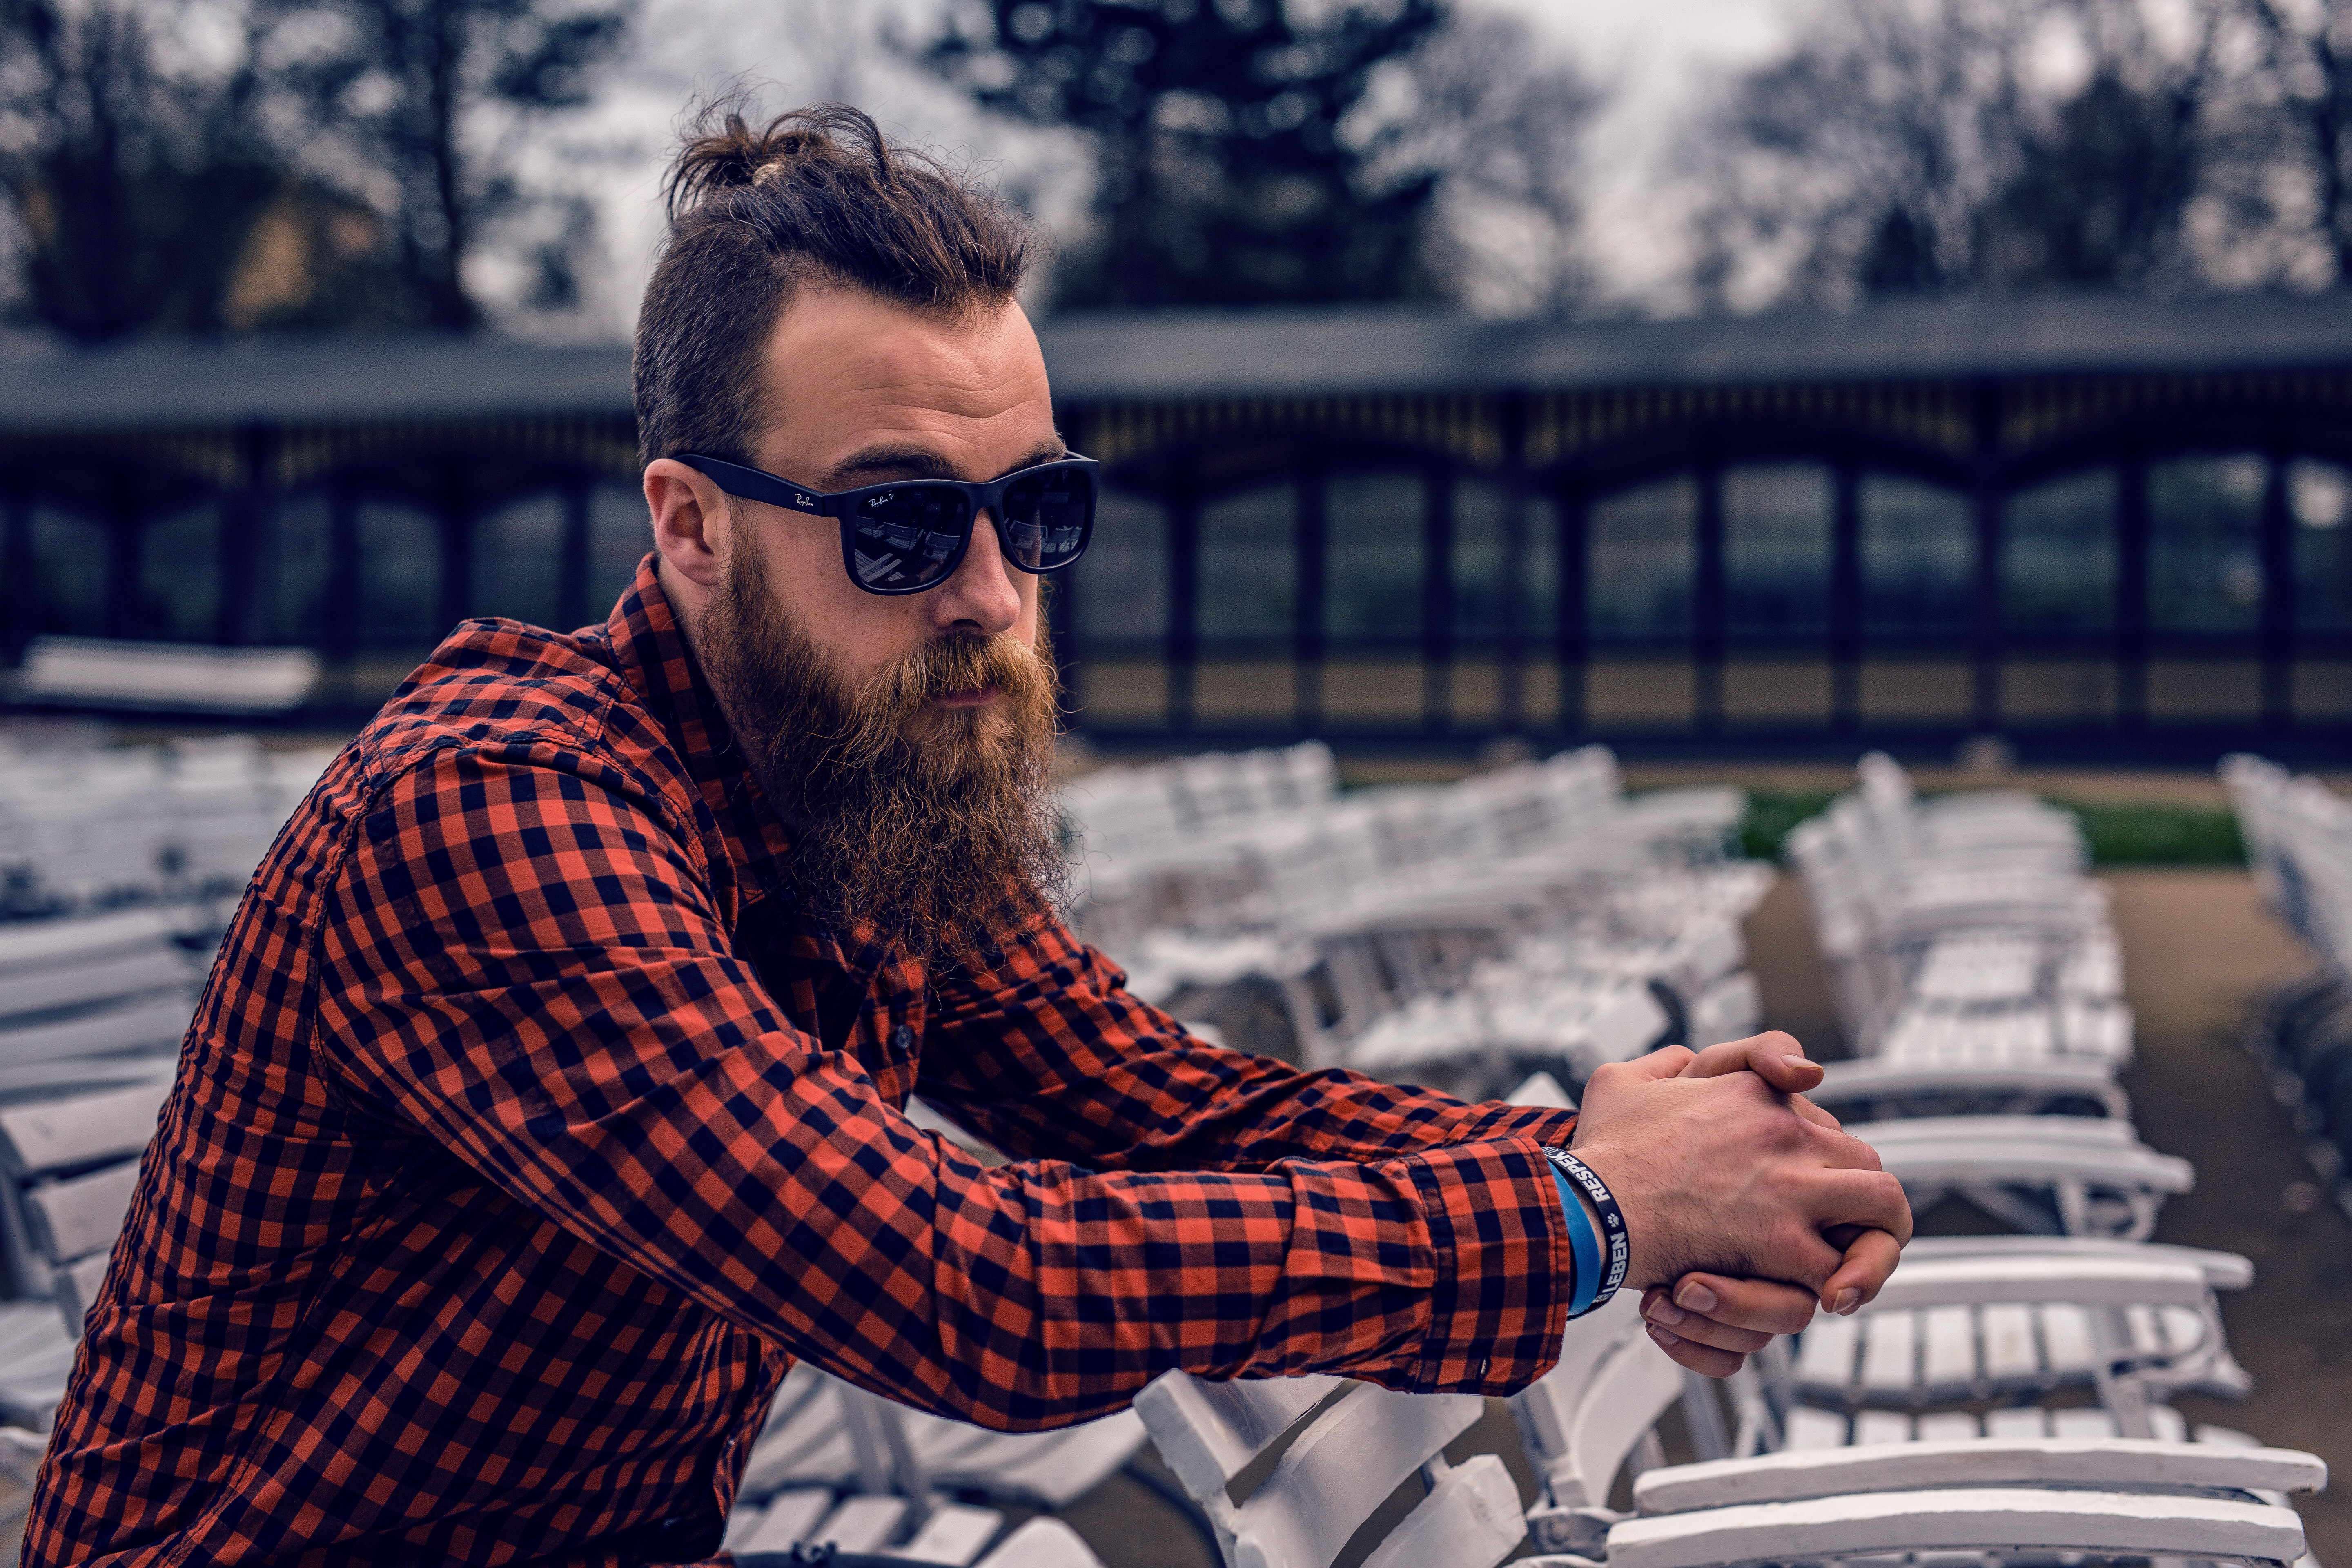 Man Wearing Black and Red Checkered Long Sleeve Shirt Wearing Black Wayfarer Sunglasses Sitting on White Wooden Chair, Adult, Beard, Checkered shirt, Fashion, HQ Photo